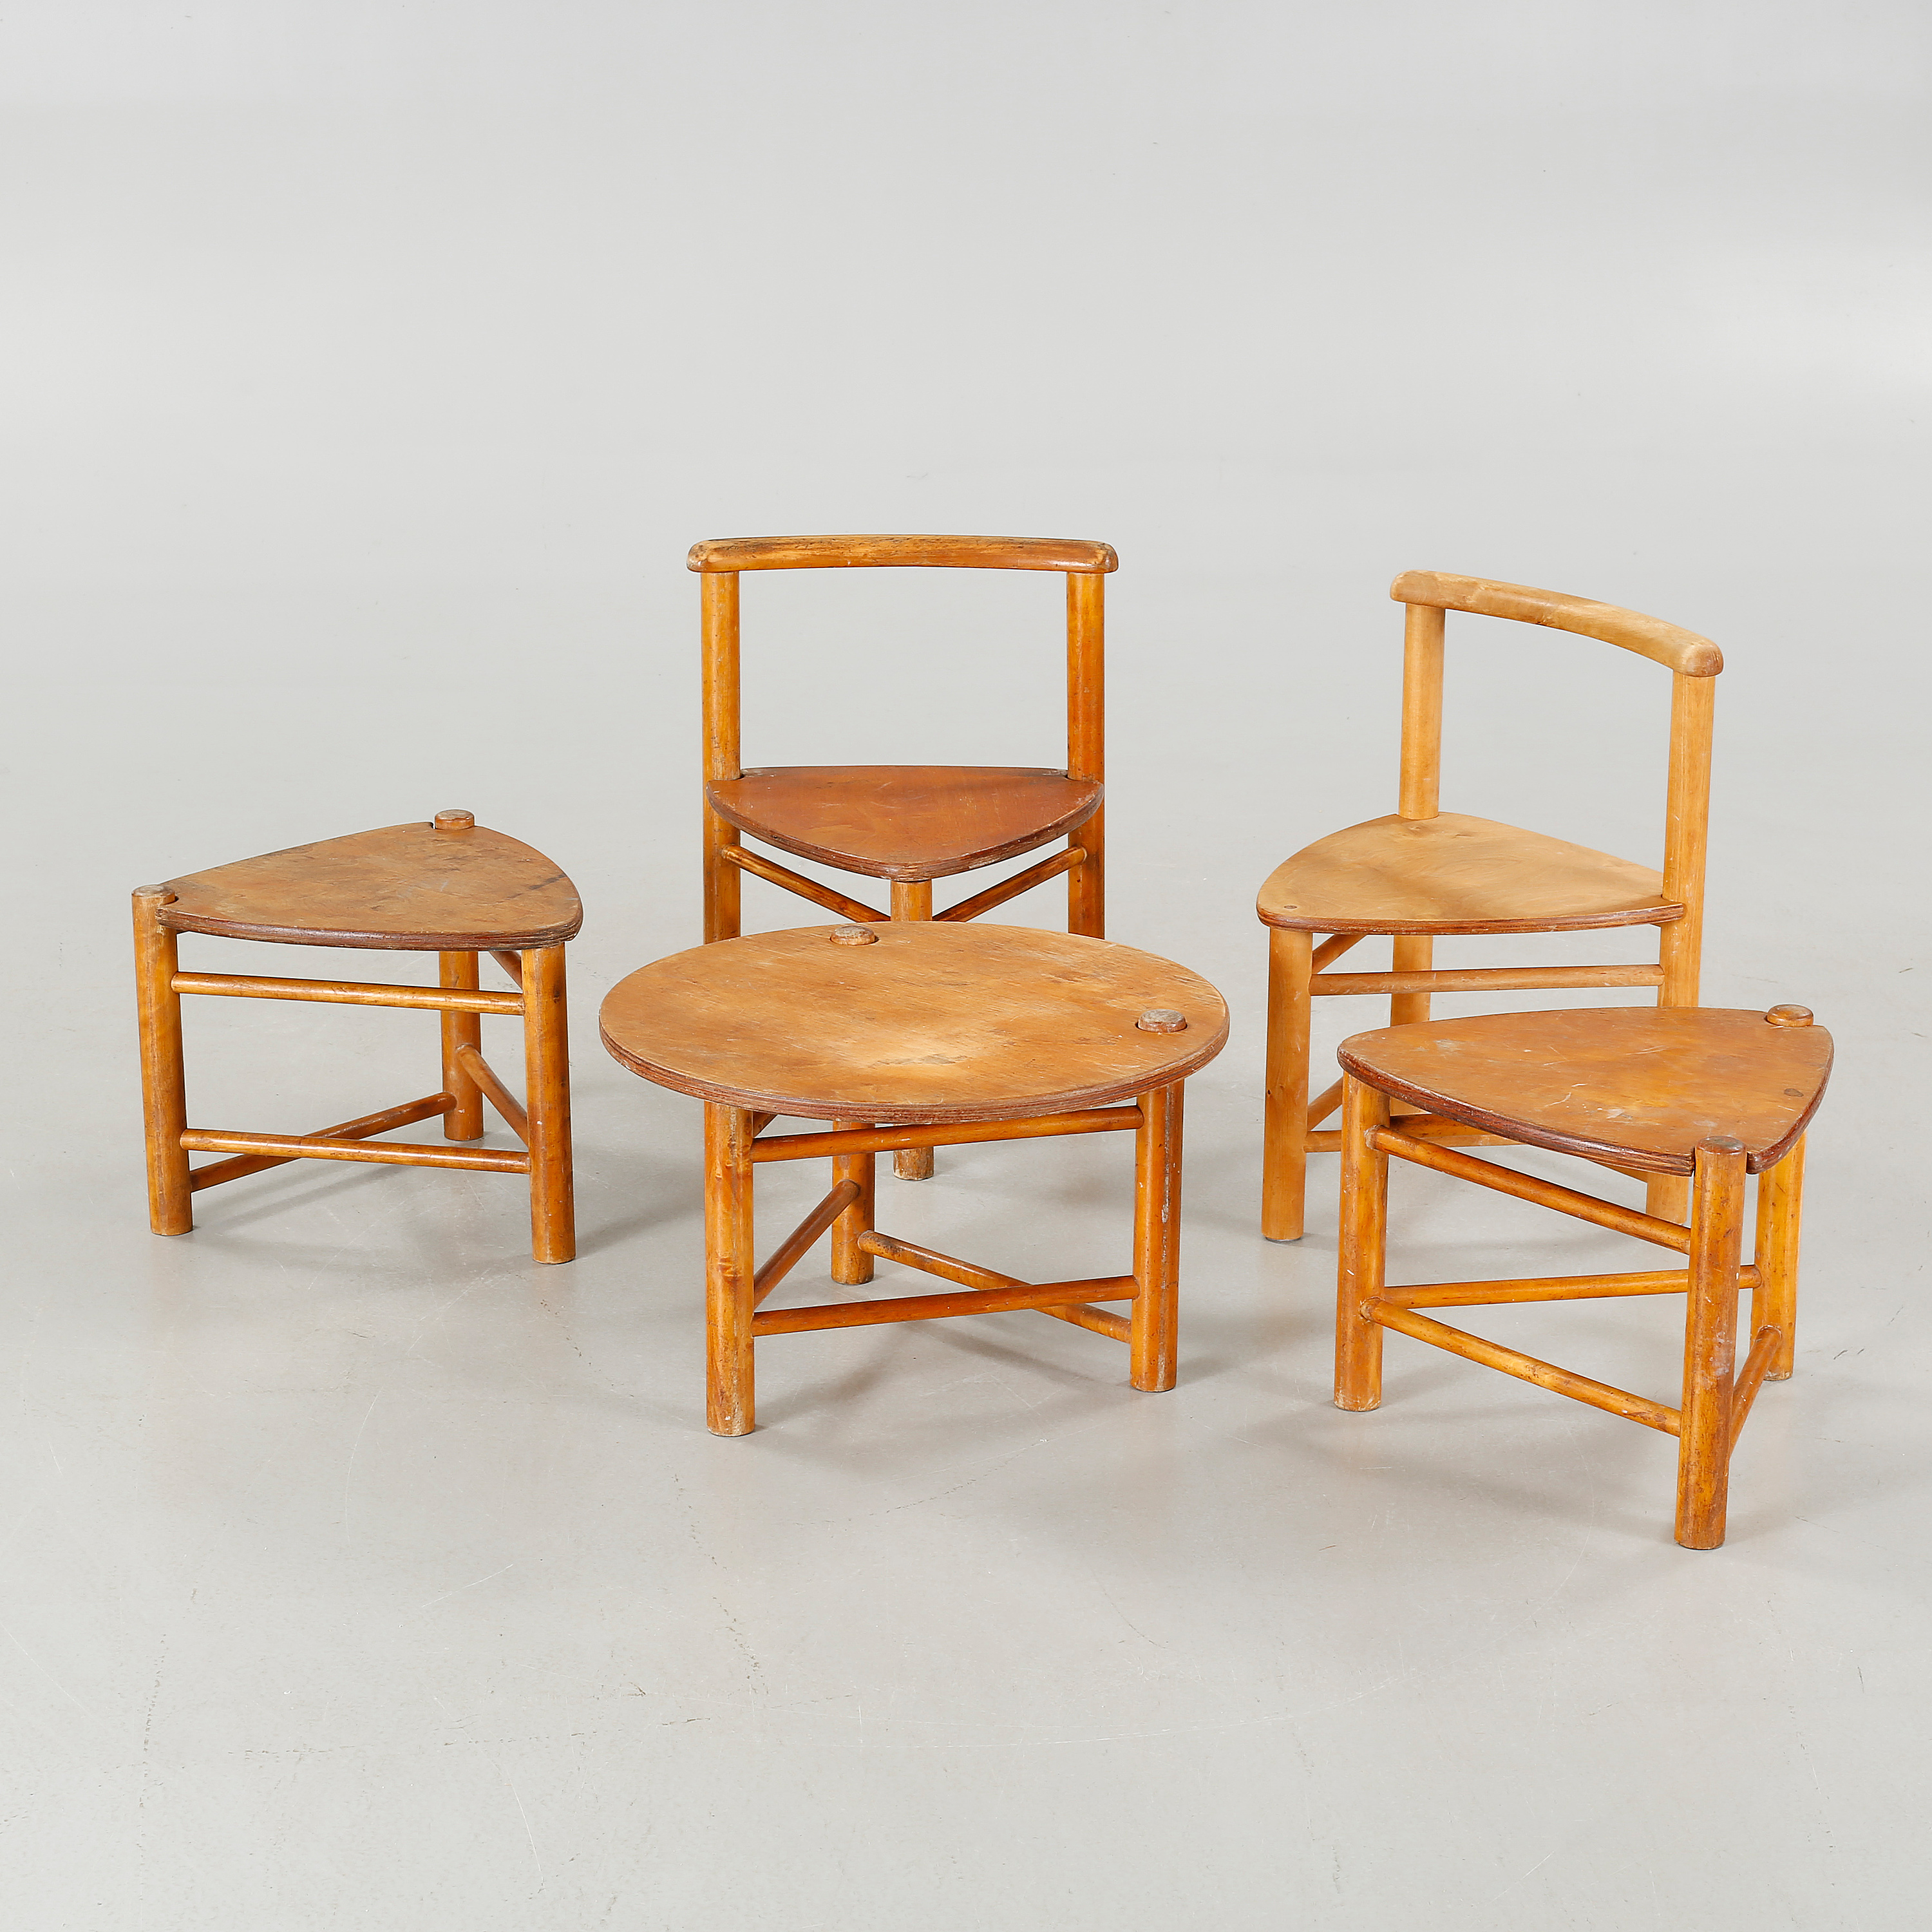 Five Children Furnitures, Designed By Elis Borg For Firm